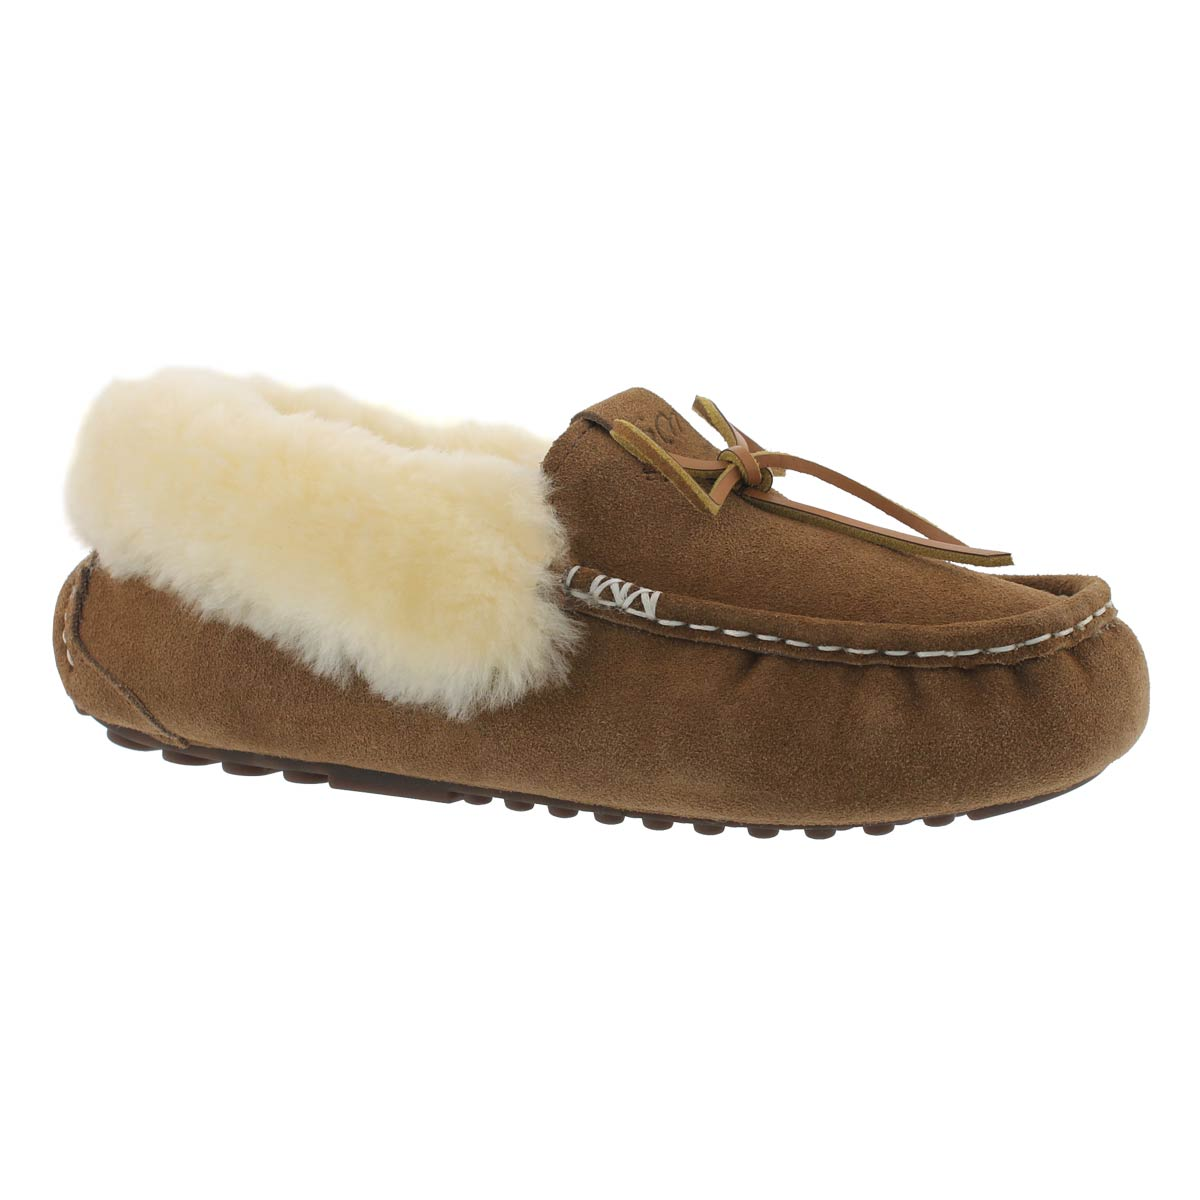 Women's PATTY ches shearling lined suede moccasins